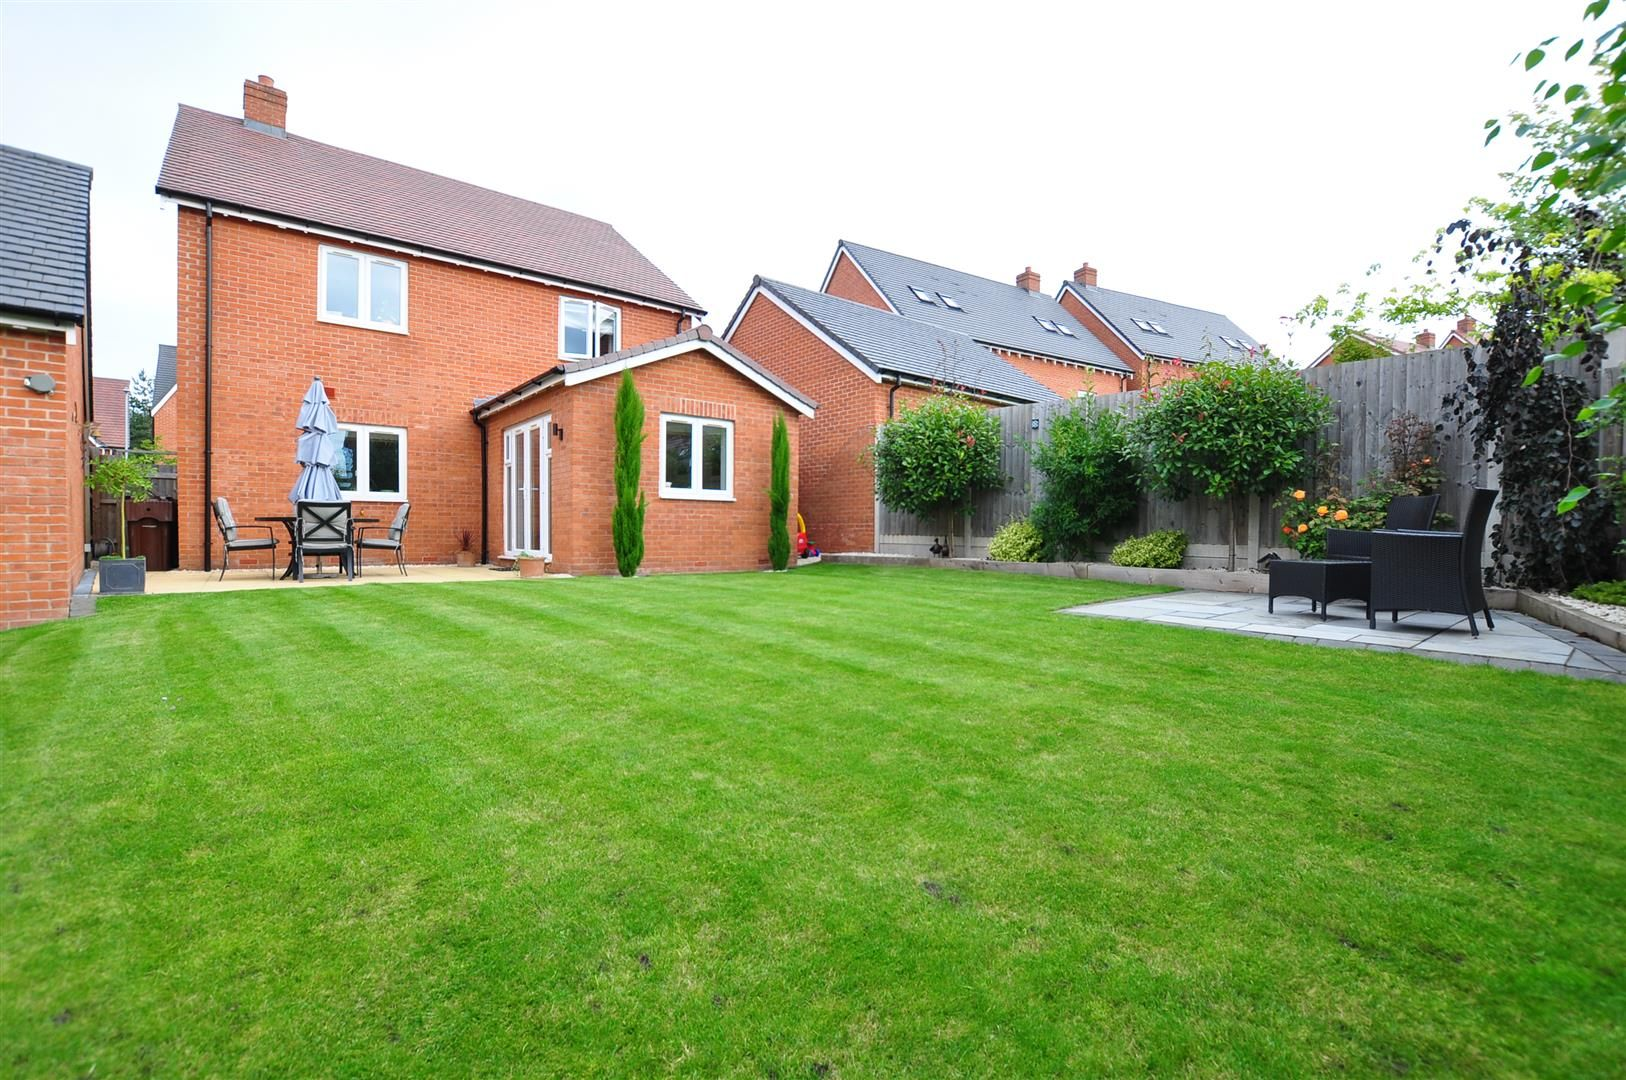 4 bed detached for sale in Hagley  - Property Image 23